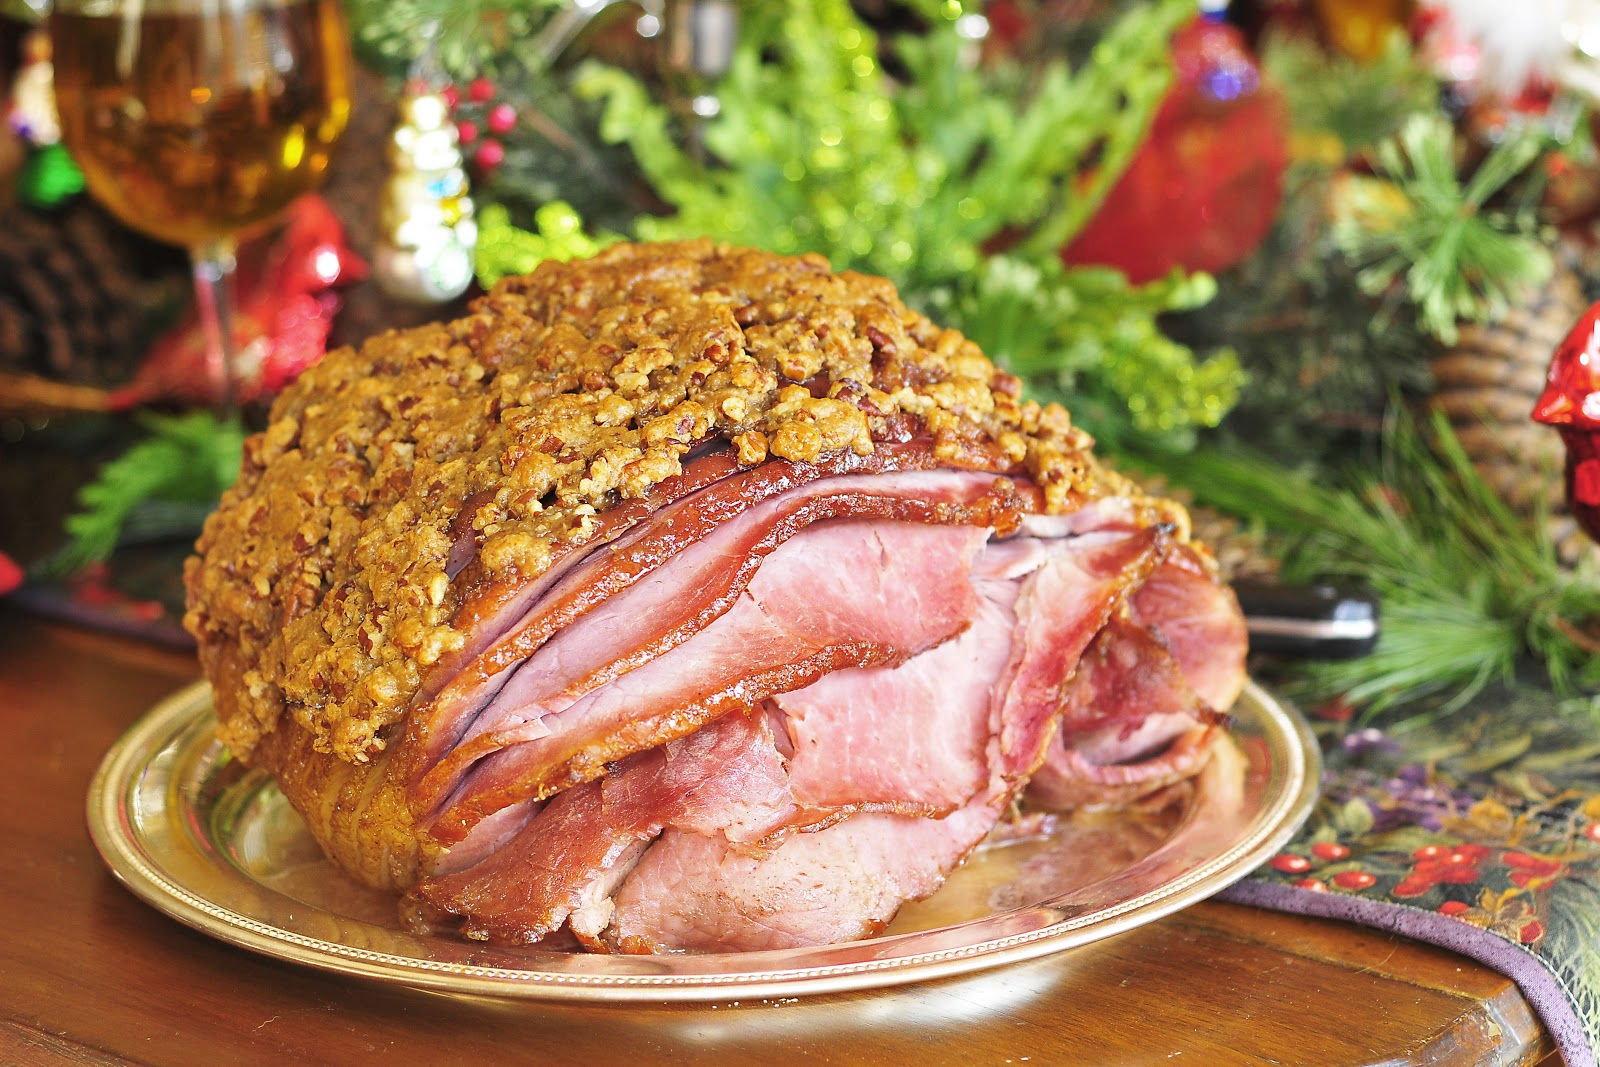 ... Gourmet: 240. Hot Buttered Rum and Pecan Encrusted Christmas Ham